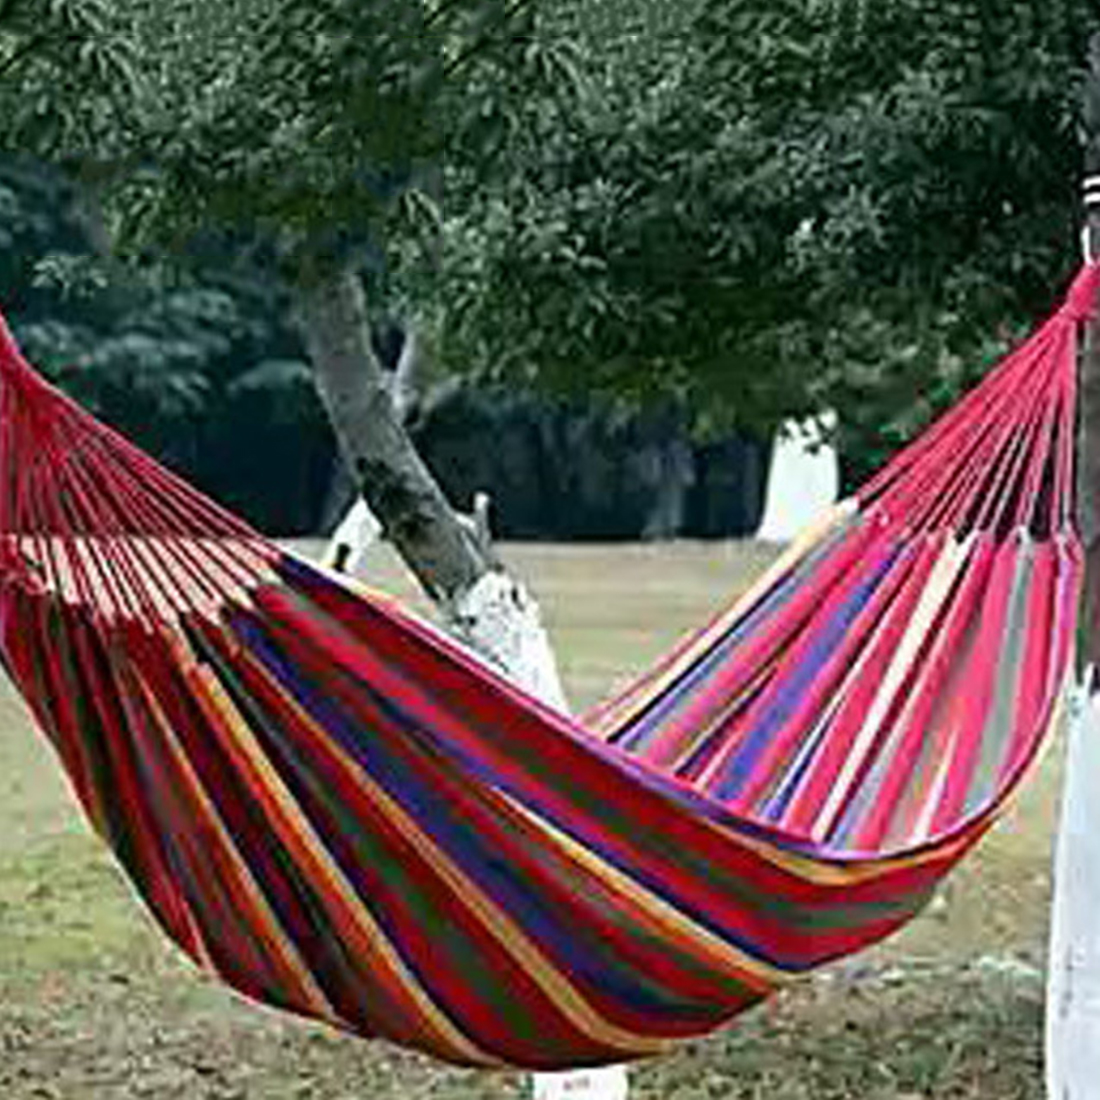 High Quality Portable Outdoor Garden Hammock Hang BED Travel Camping Swing Canvas Stripe NVIE 280*100cm